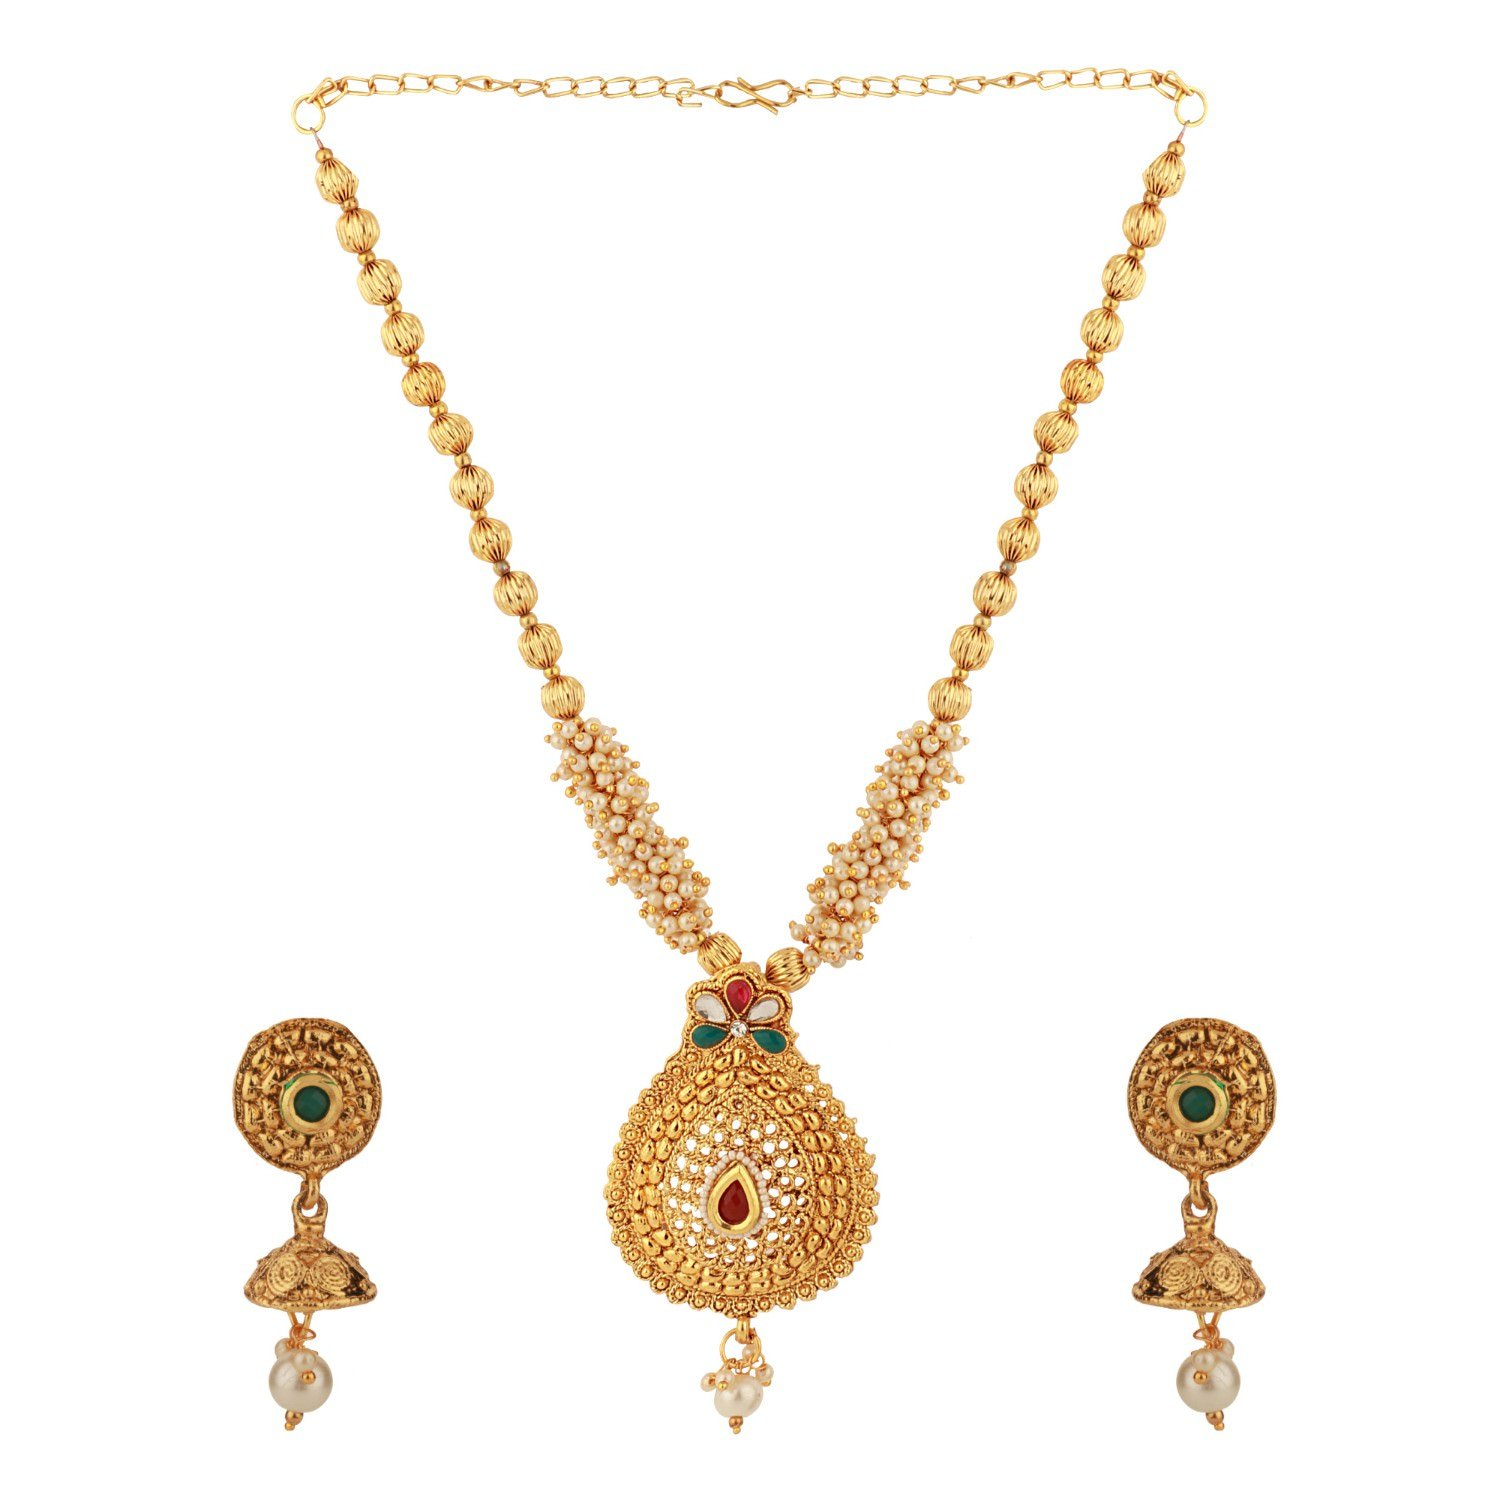 Efulgenz Indian Bollywood Traditional 14 K Gold Plated Crystal Kundan Temple Pearl Beaded Wedding Necklace Earrings Jewelry Set